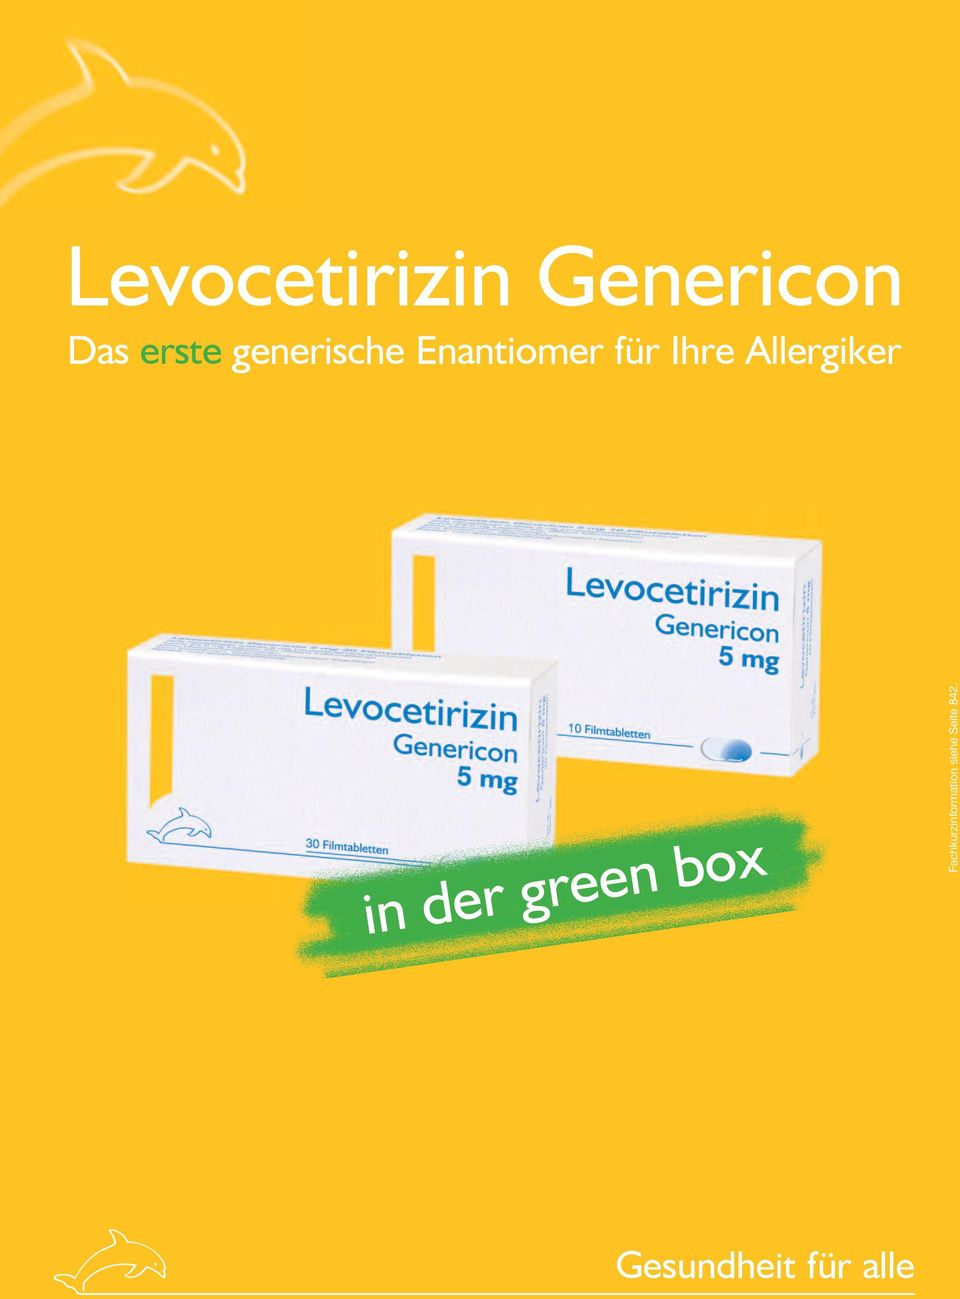 Allergiker in der green box